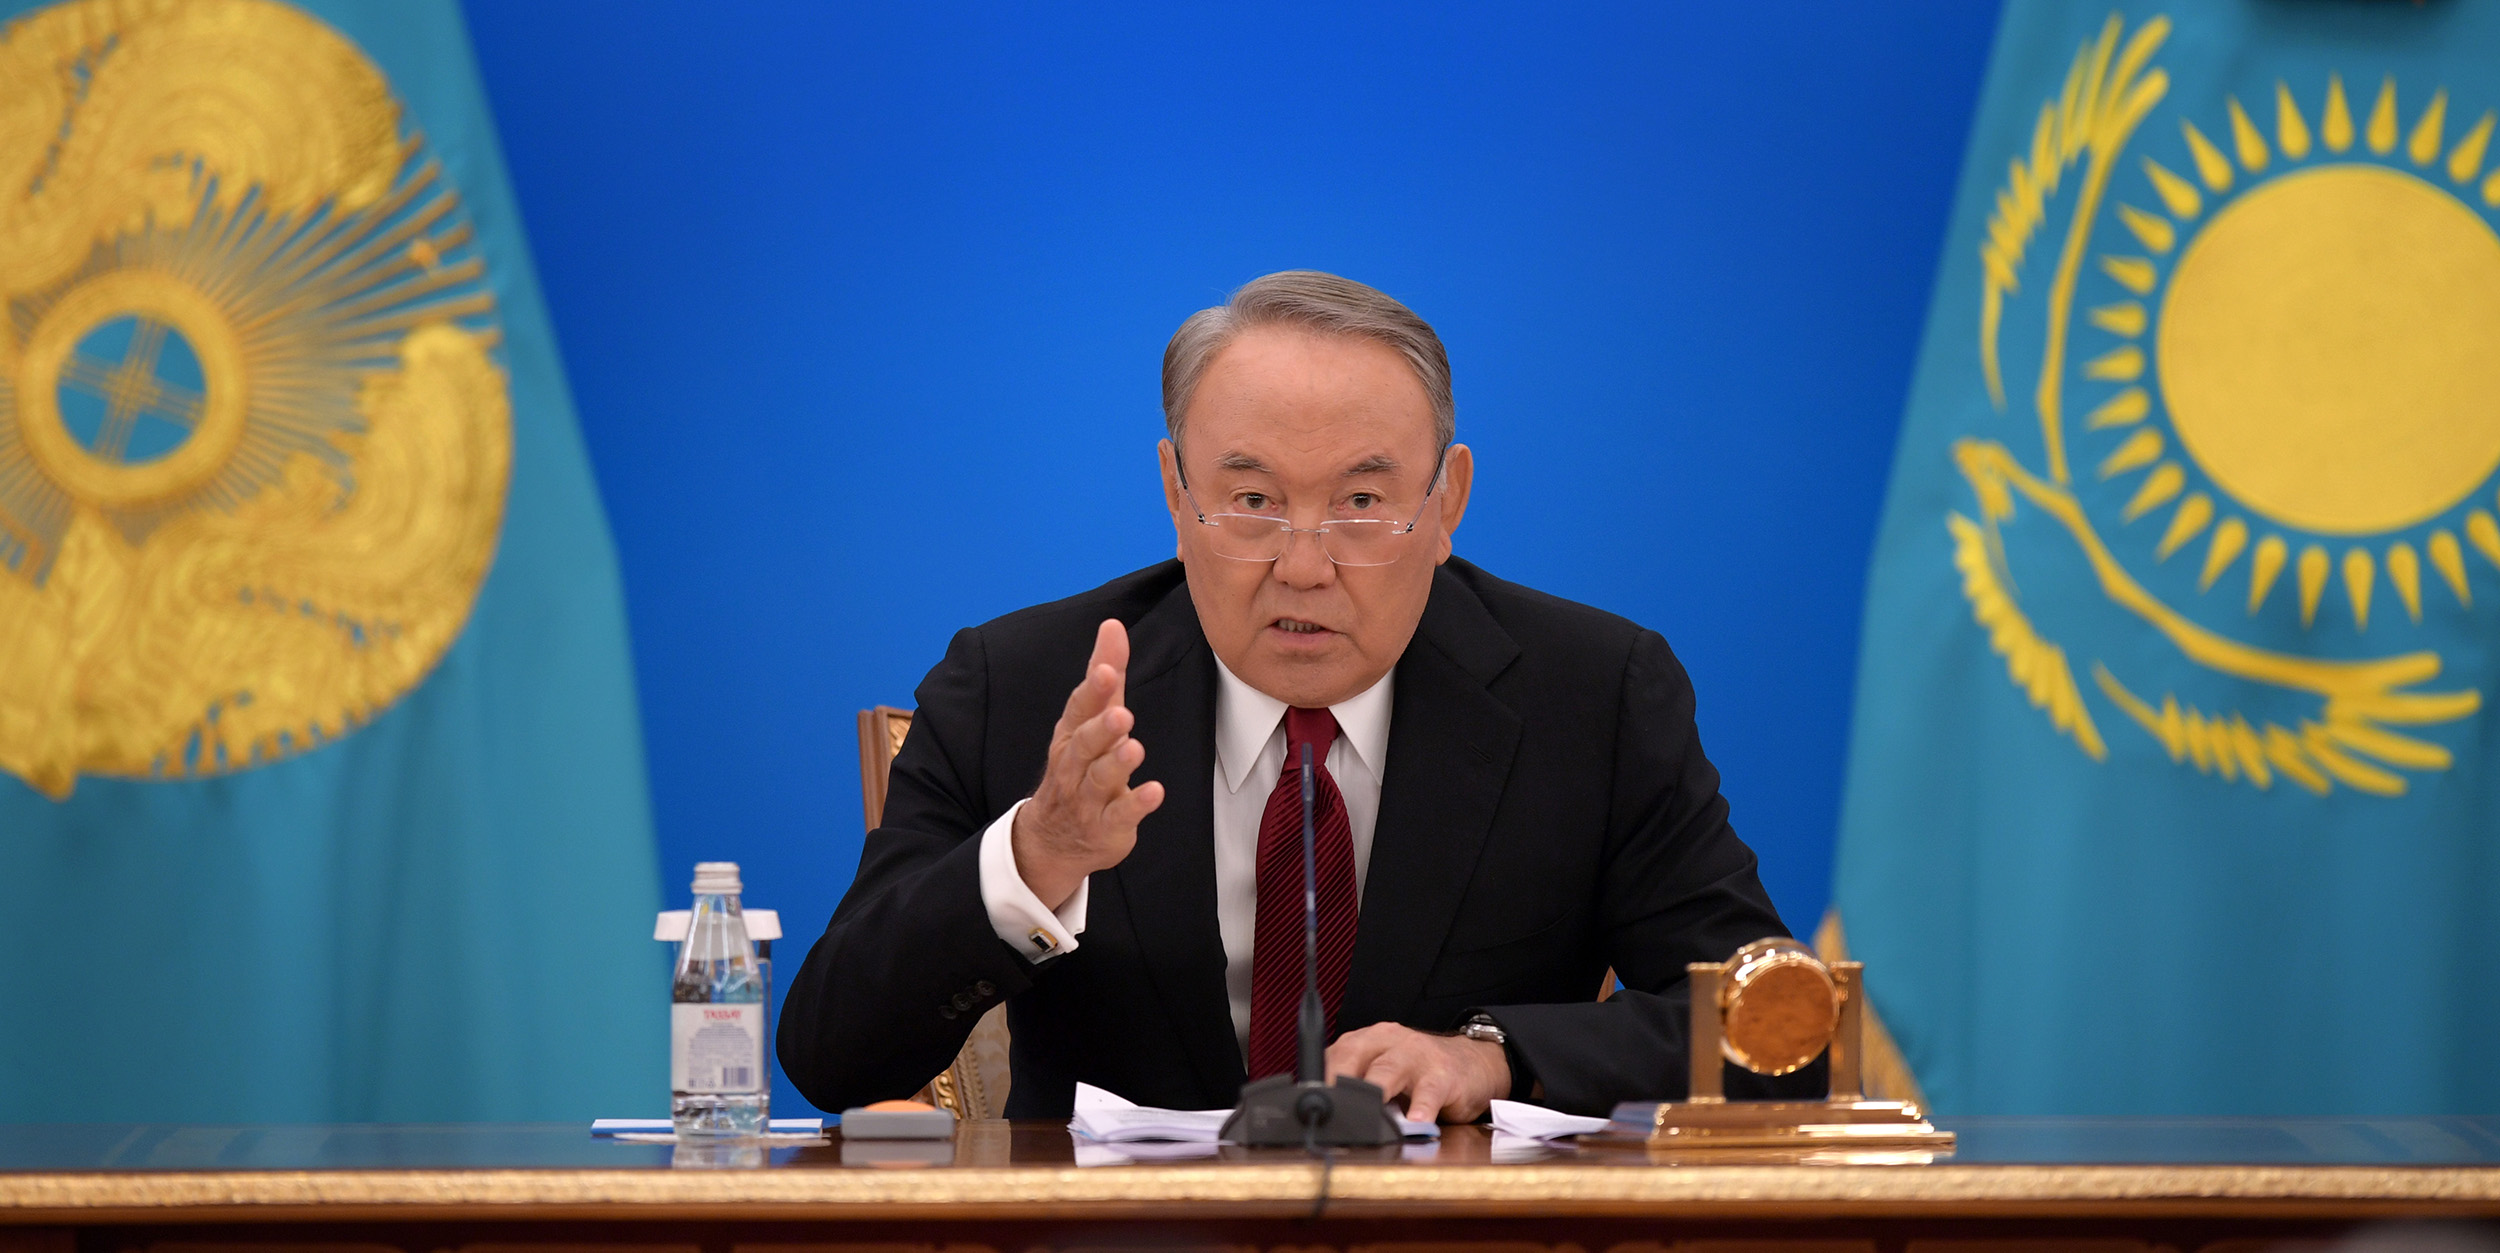 Growing welfare of Kazakh citizens: Increase in income and quality of life - Full text of State of the National Address by President Nursultan Nazarbayev